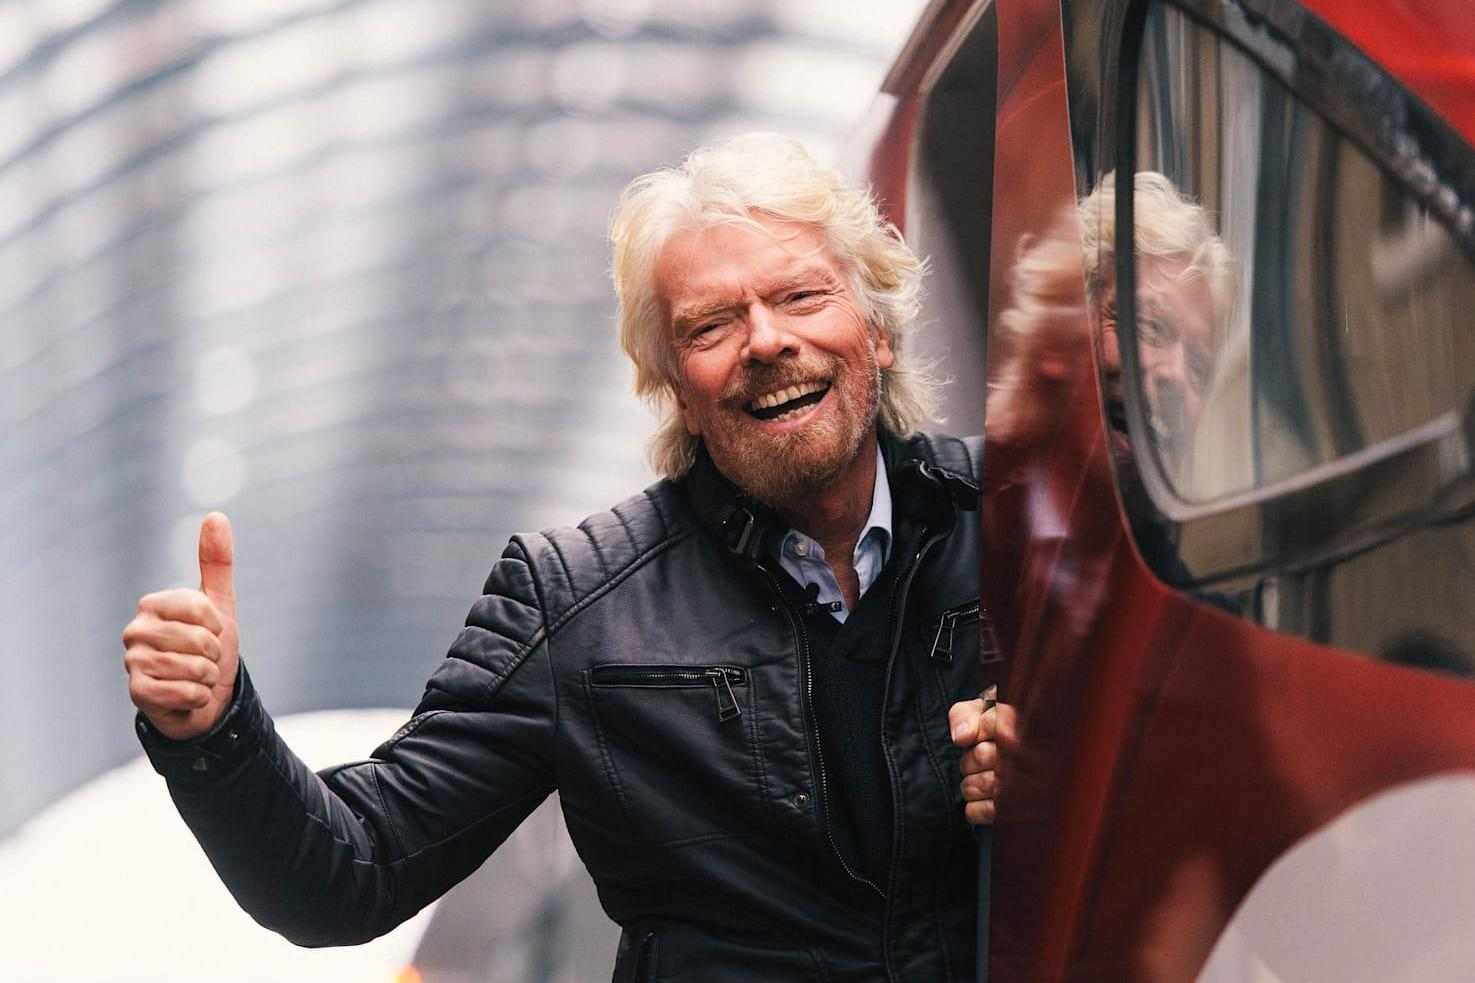 Virgin Trains is a lesson in how to successfully run a railway